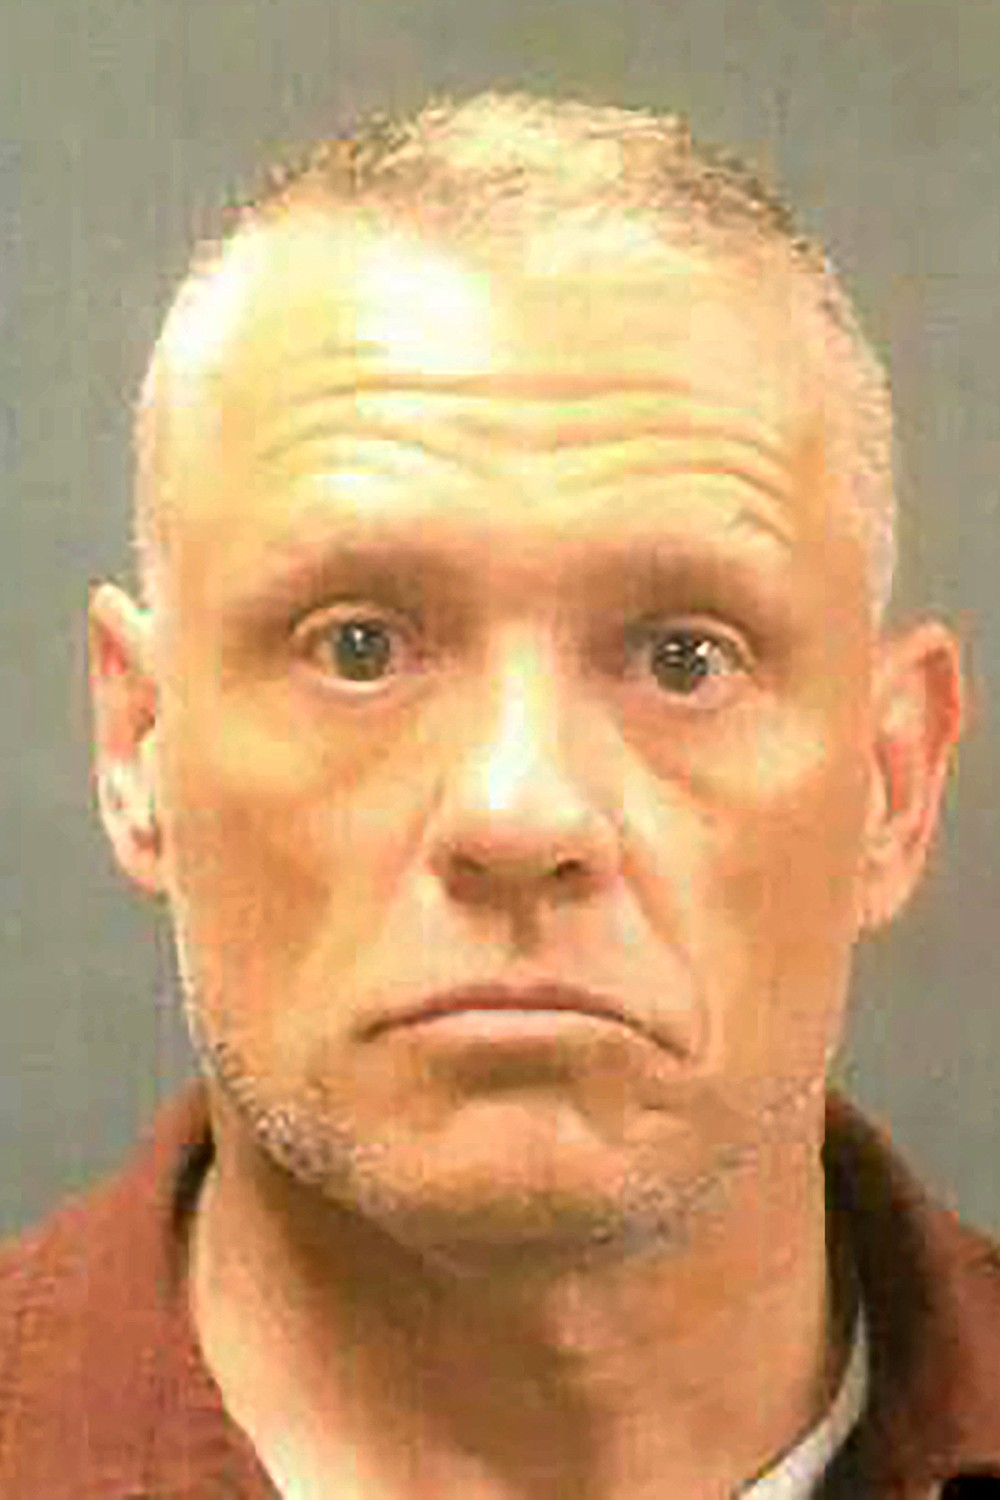 This undated handout booking photo provided by the New Hampshire Attorney General's office shows Jeffrey Buskey, one of six men arrested Wednesday, April 7, 2021, in connection with sexual abuse allegations at New Hampshire's state-run youth detention center, the attorney general's office said. (New Hampshire Attorney General's Office via AP)